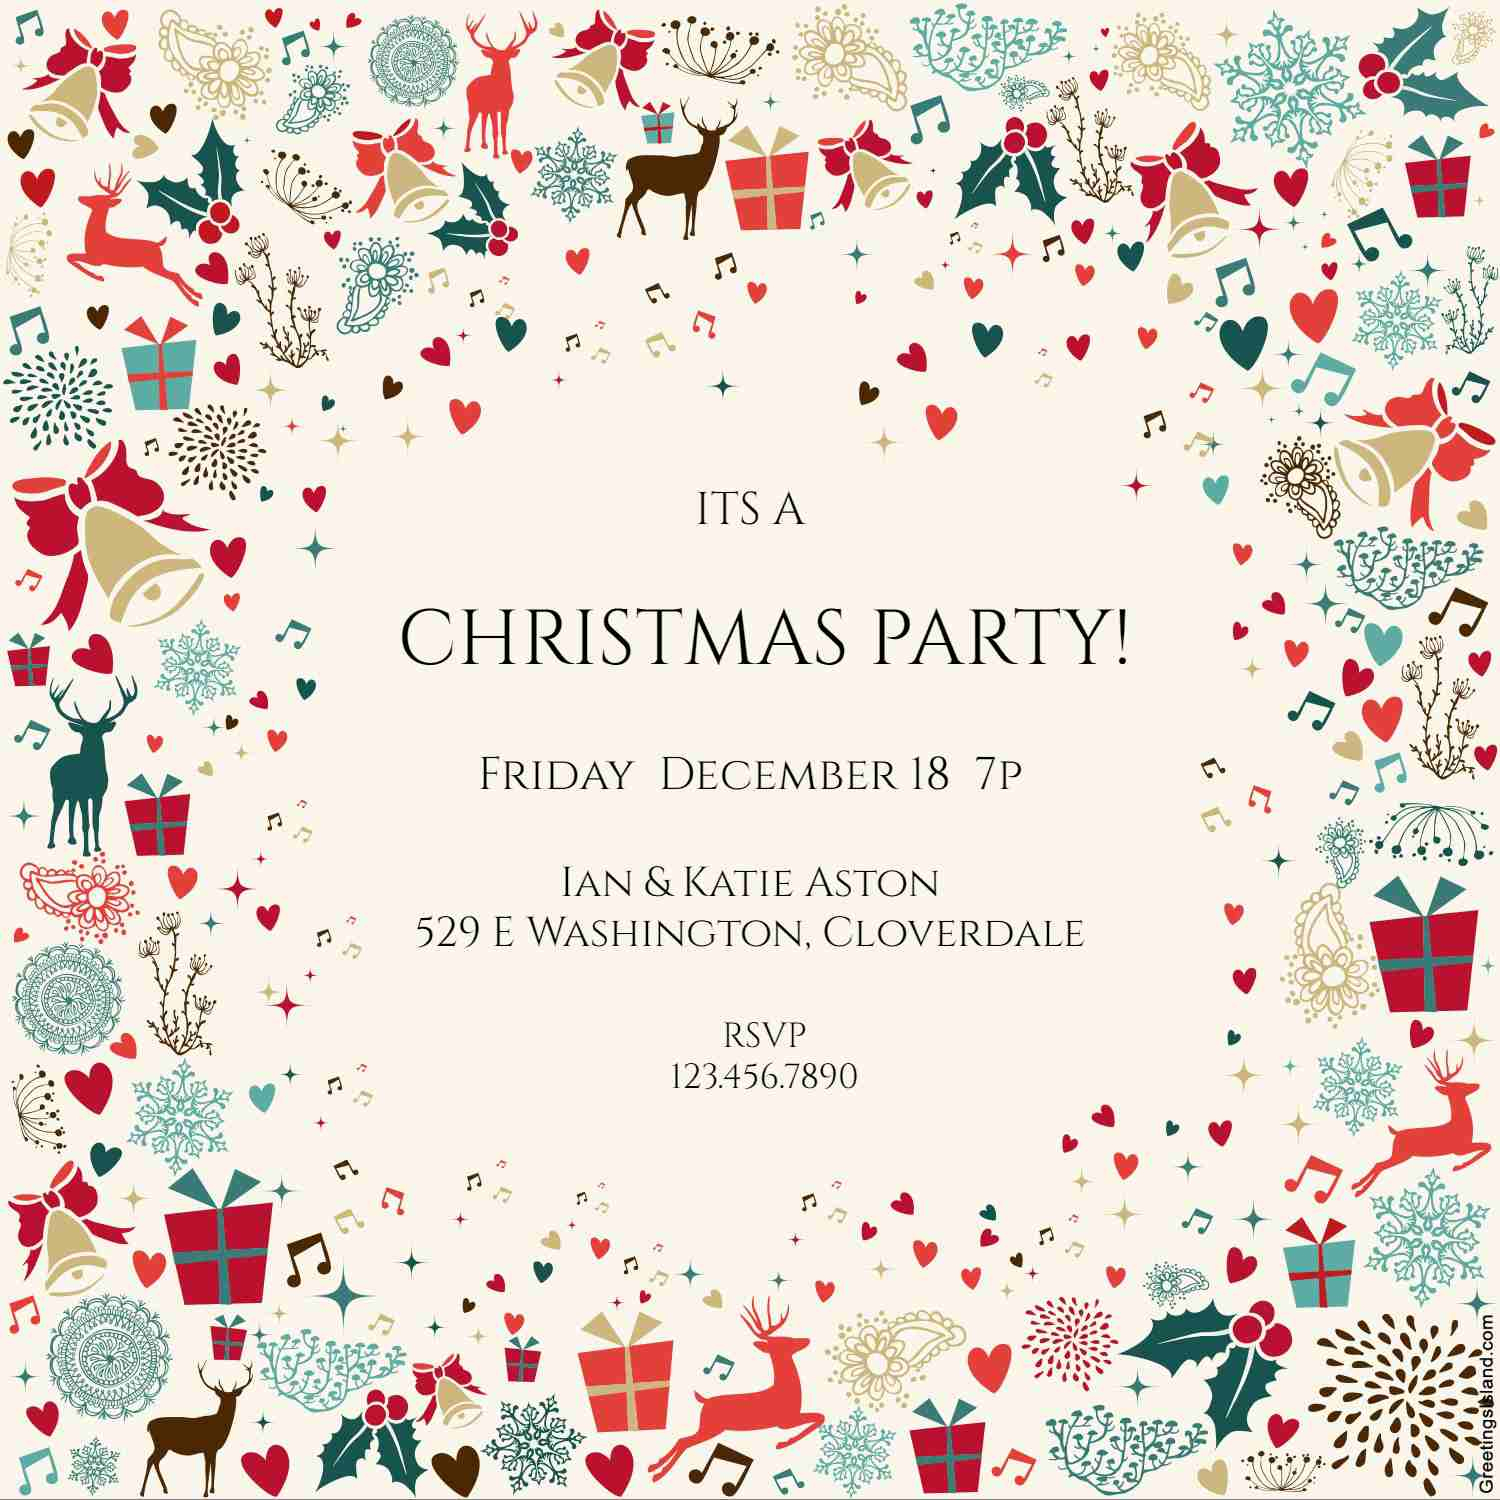 10 Free Christmas Party Invitations That You Can Print - Free Printable Christmas Party Invitations